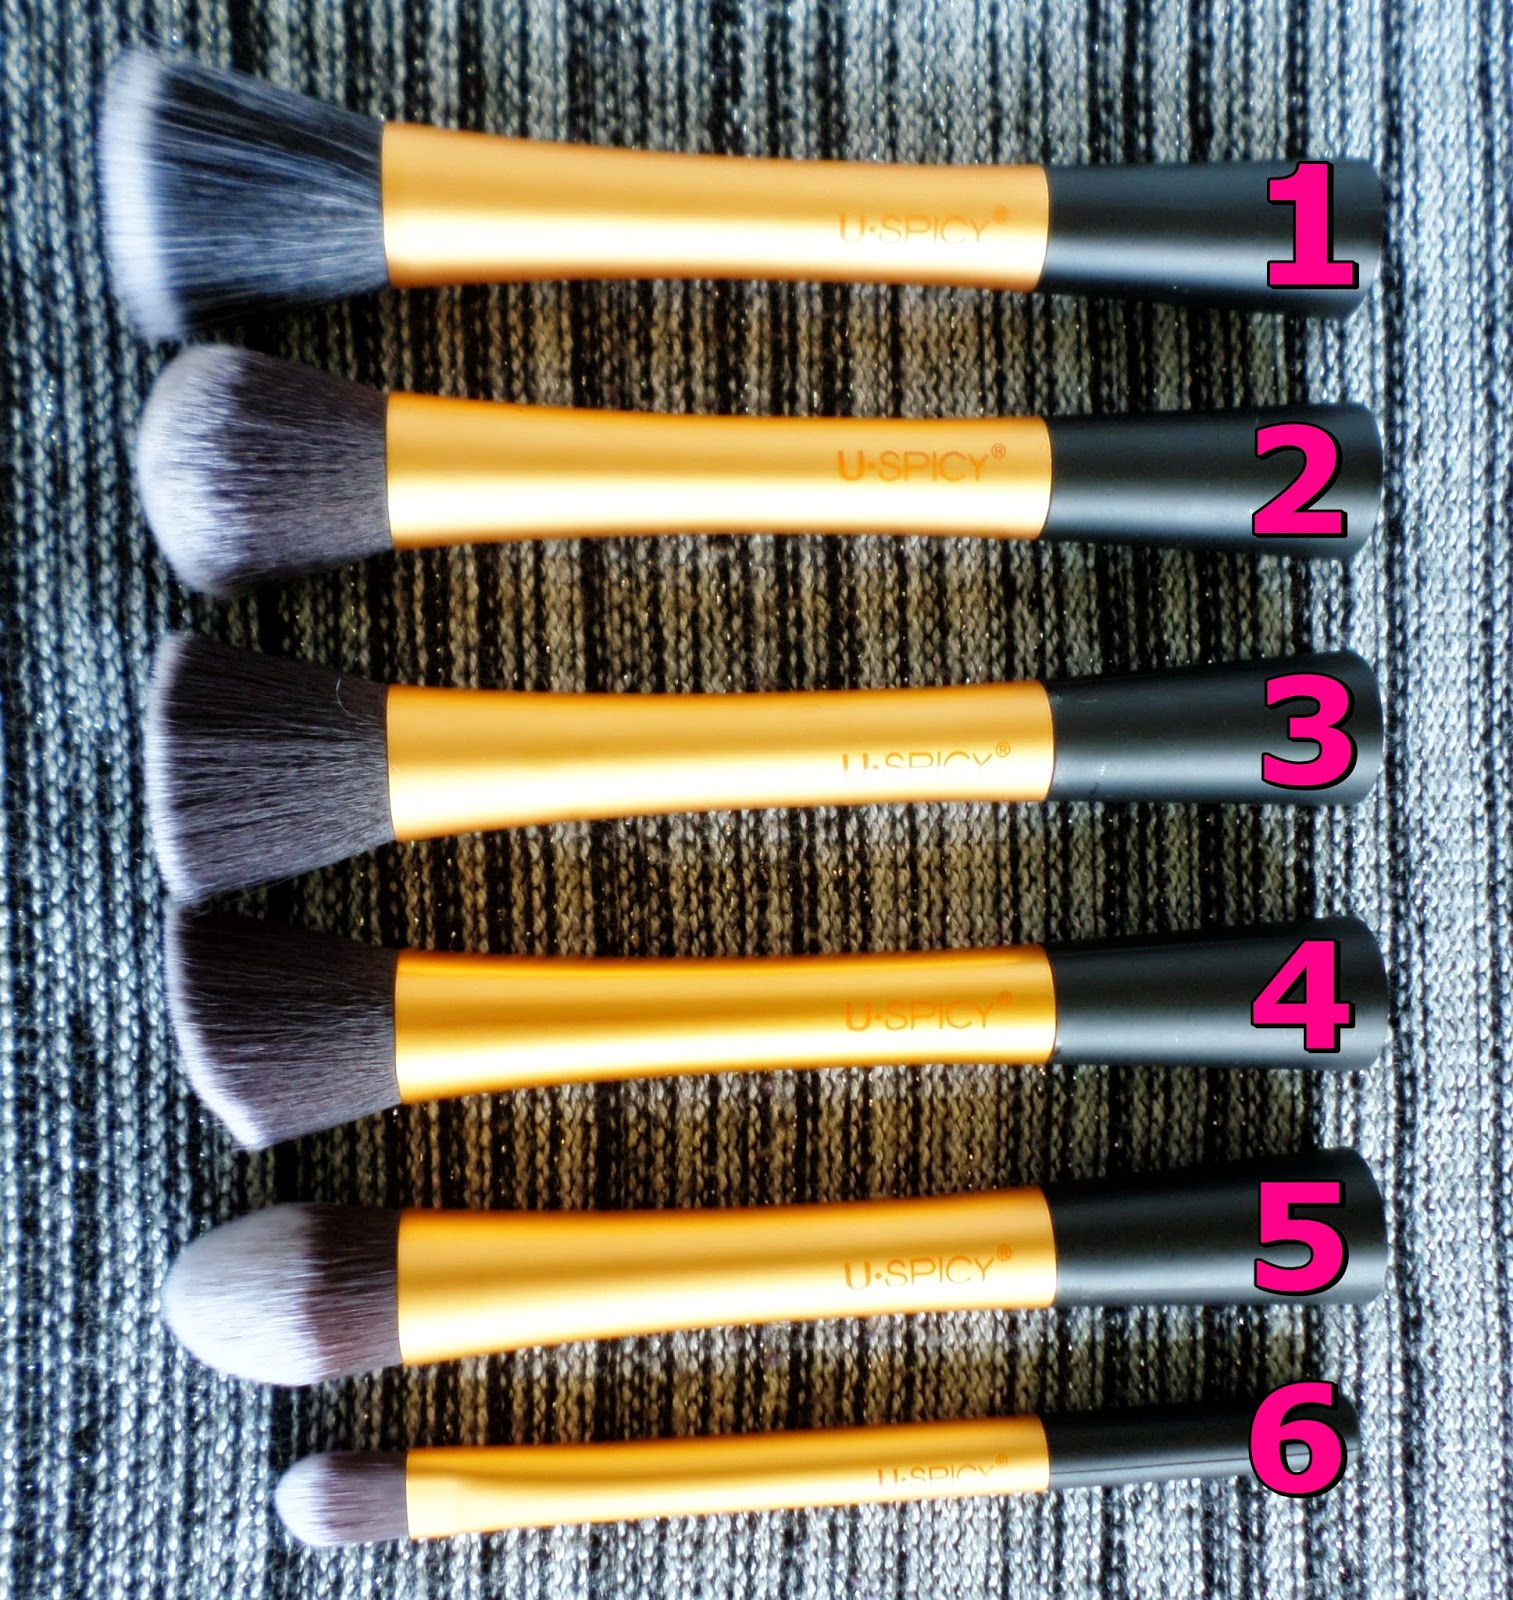 USpicy Makeup Brushes Review Real Techniques Dupe Brush Set